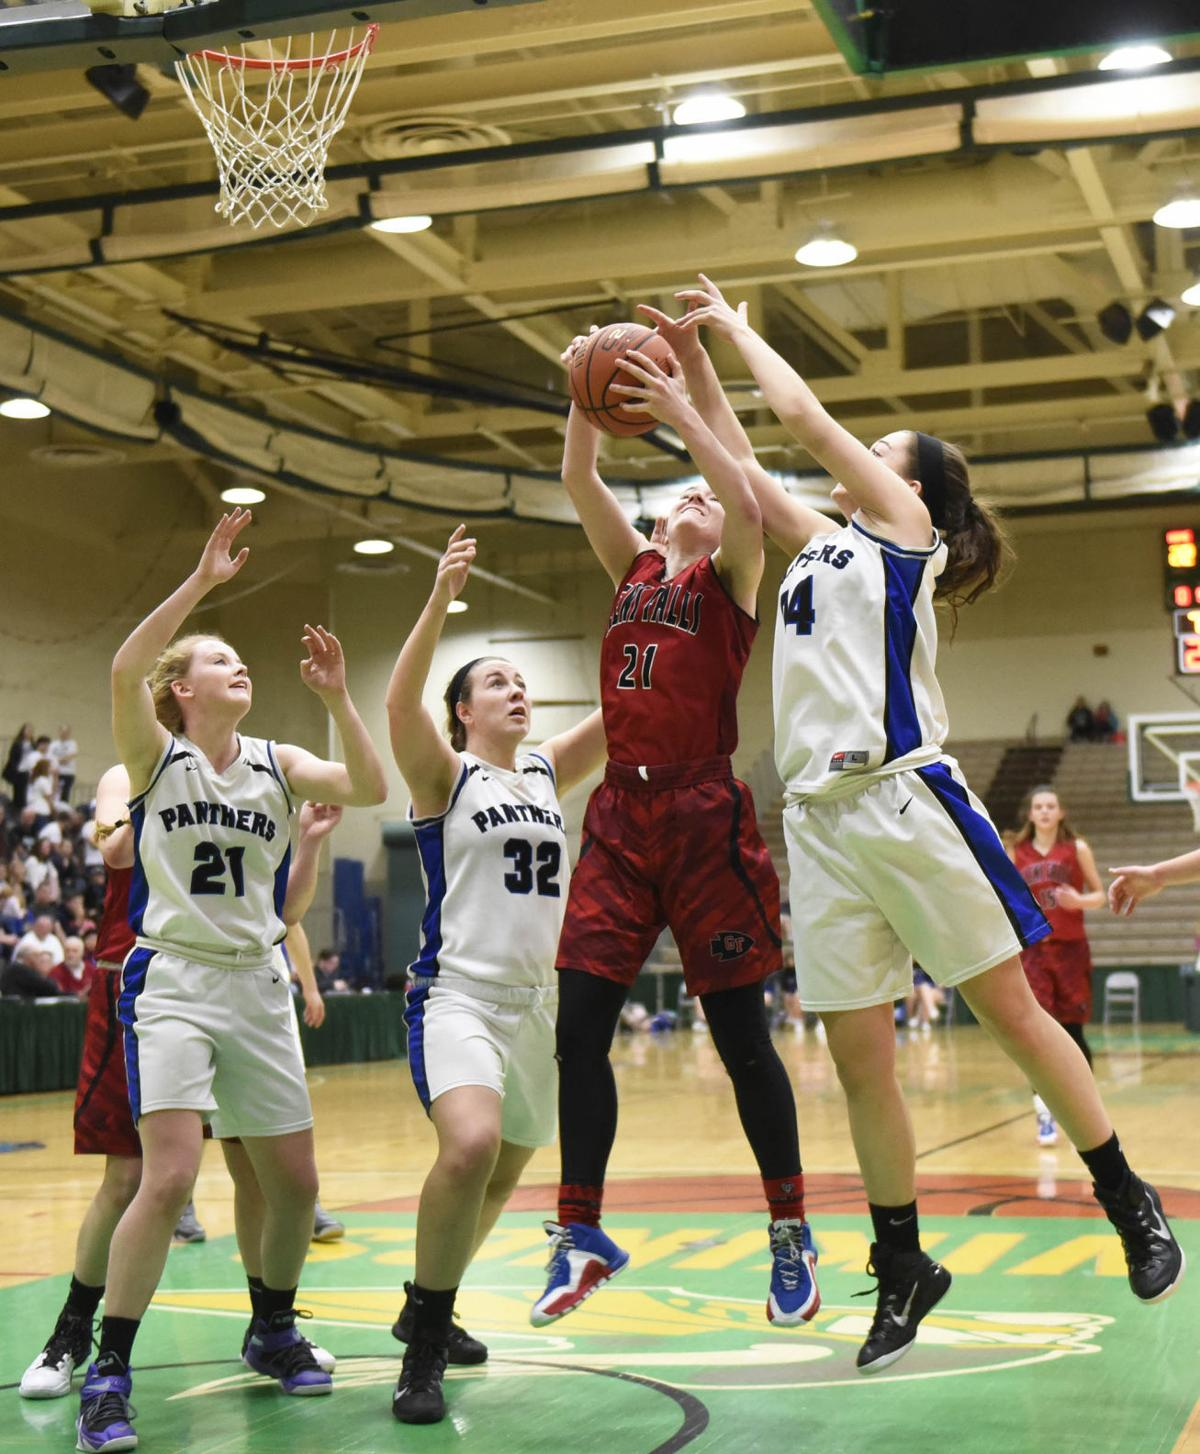 glens falls single jewish girls Glens falls high school is a high  winter sports were very successful for glens falls in the 2015-2016 school year the girls  united states glens falls high .